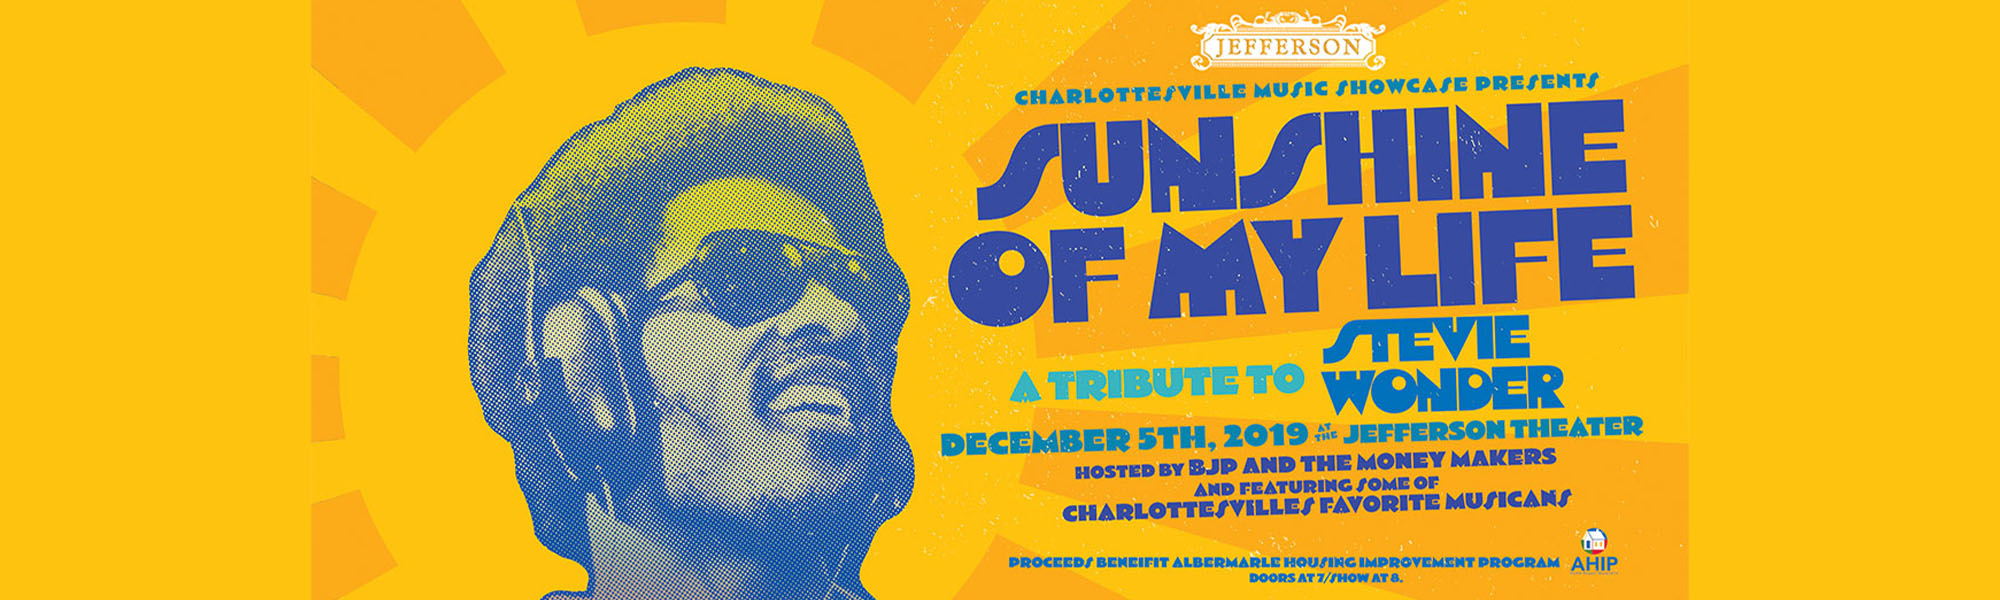 December 5 Stevie Wonder Tribute Concert at Jefferson Theater Benefiting AHIP